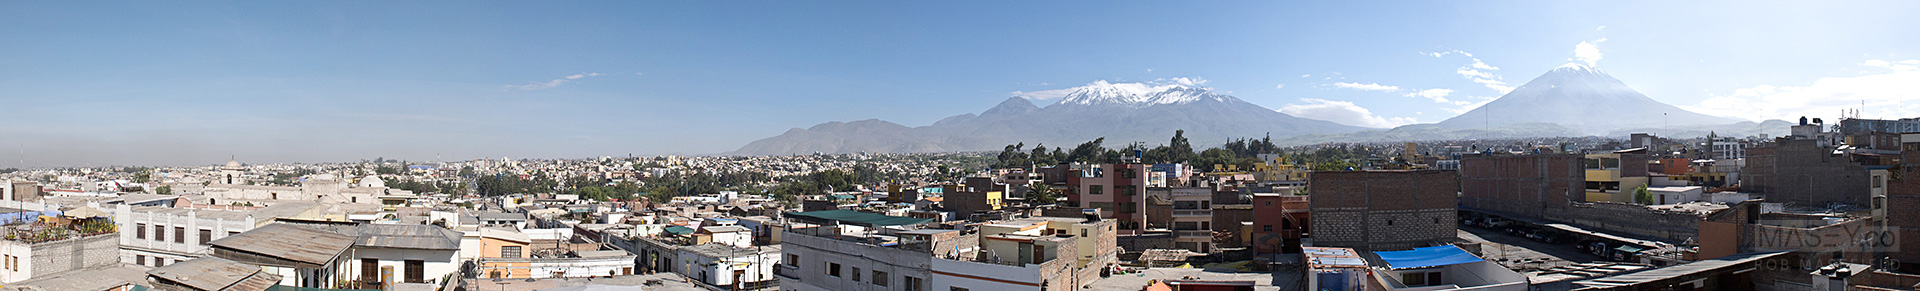 'El Misti', 'Chachani' and 'Pichu-Pichu' loom large over the city of Arequipa.